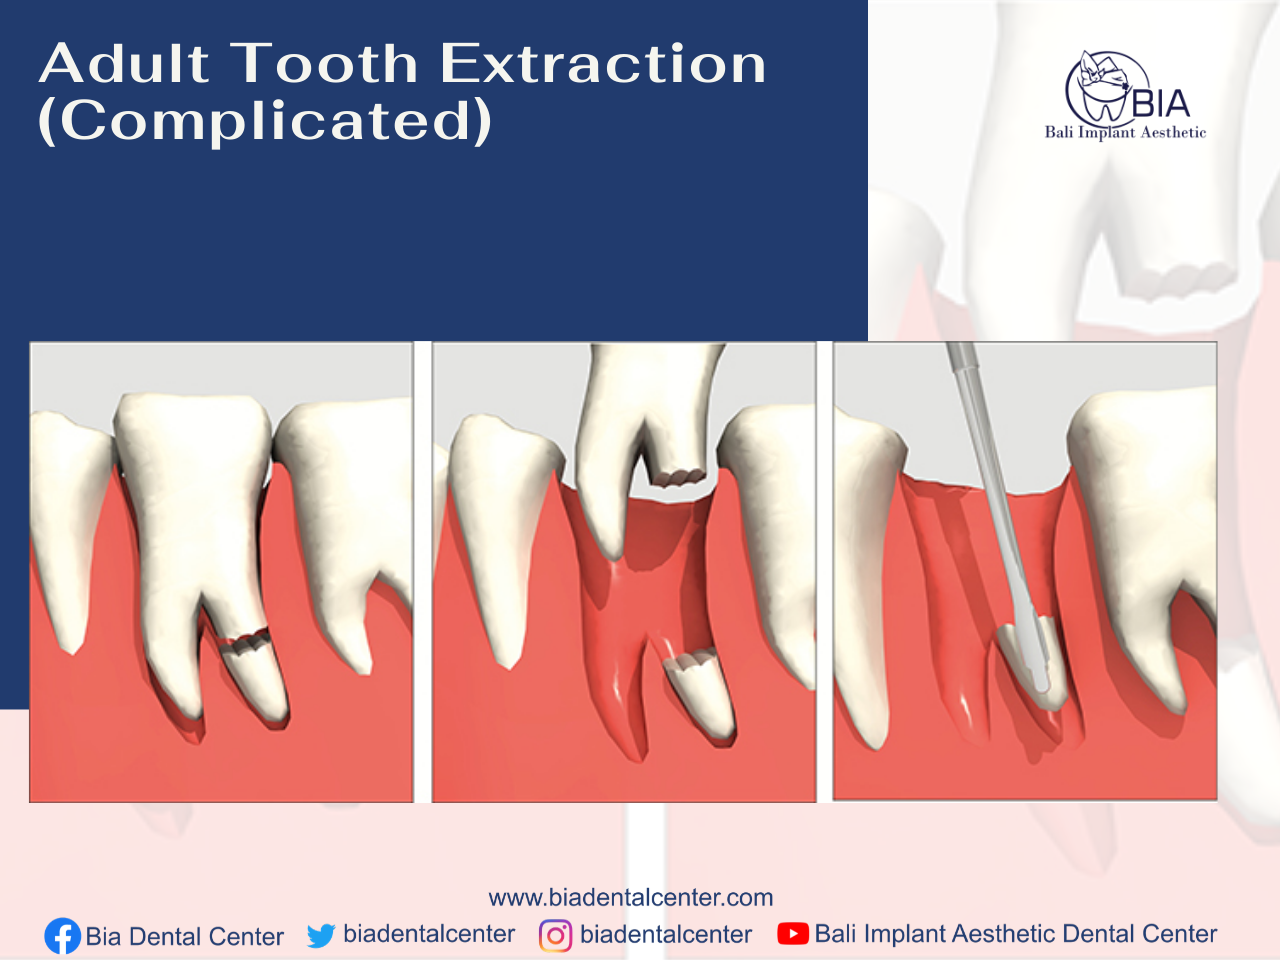 Adult Tooth Extraction Complication Bali Implant Aesthetic Bia Dental Center